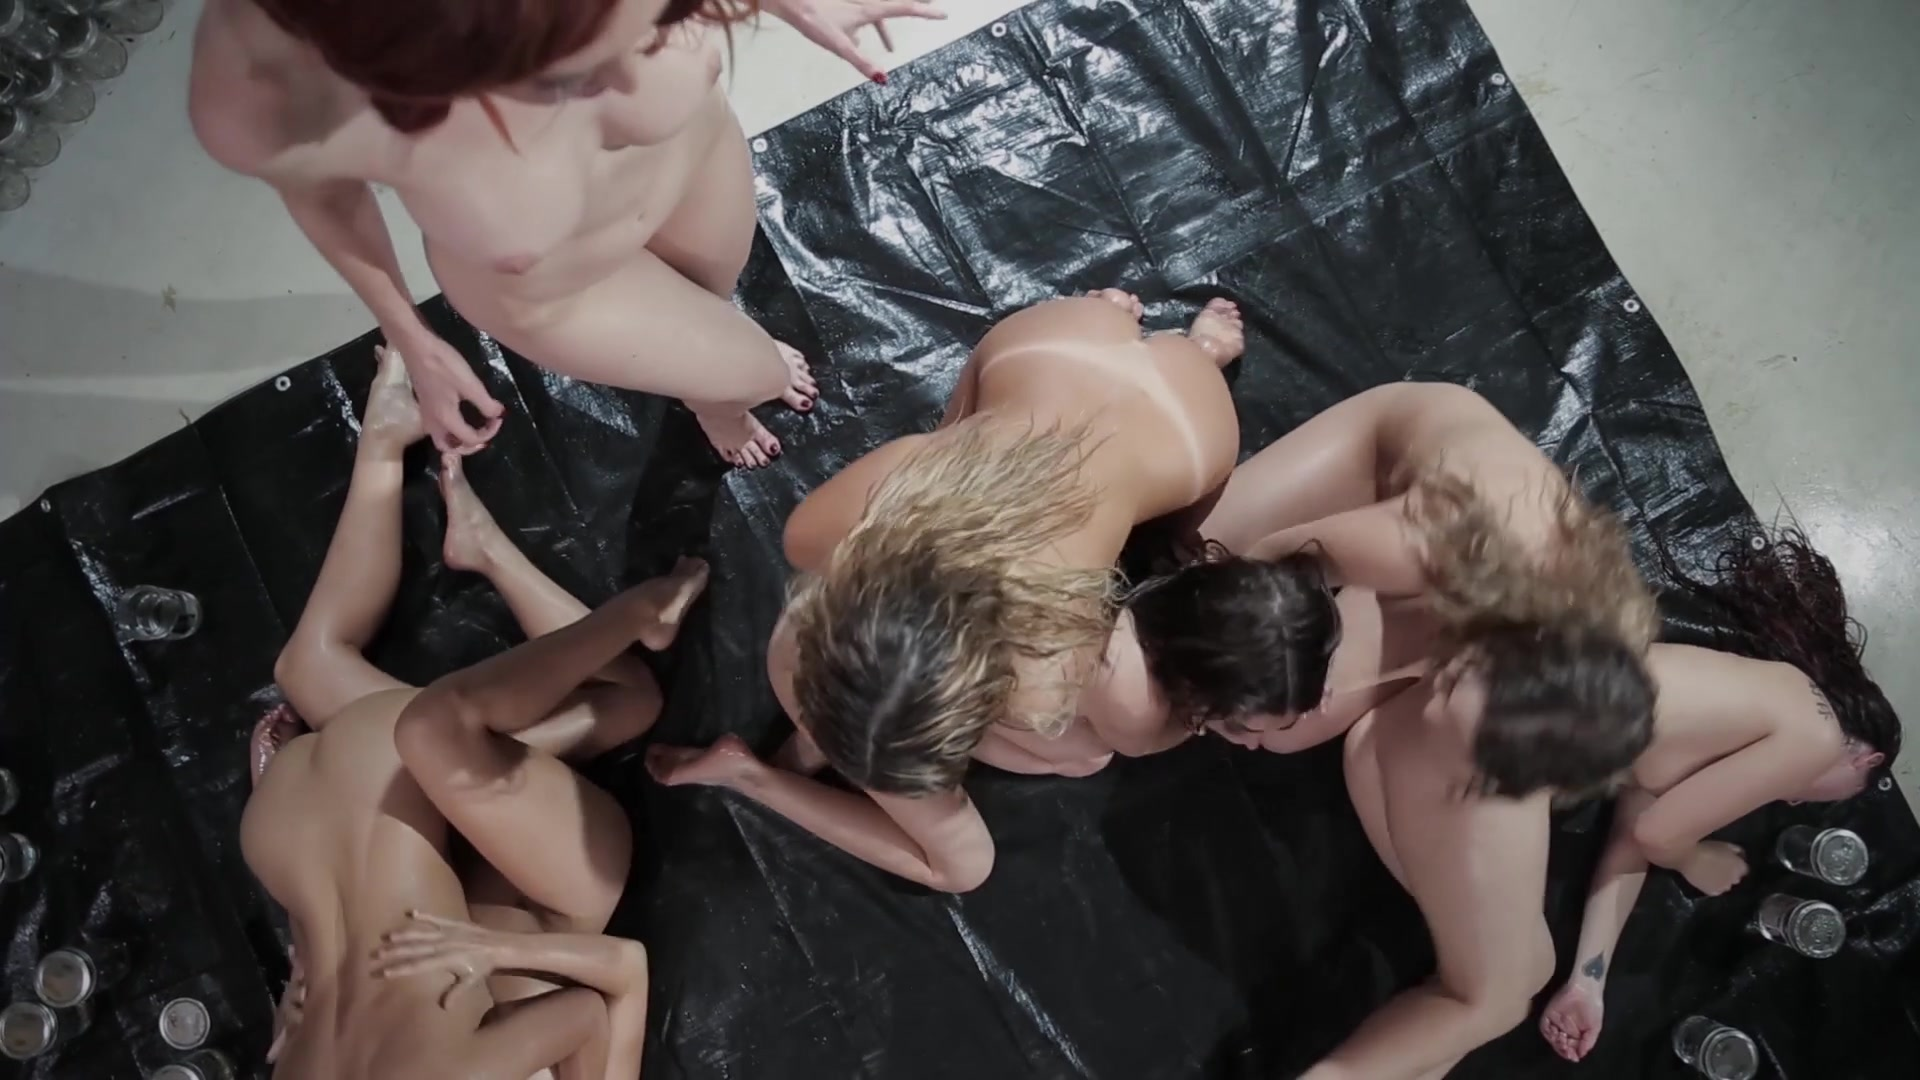 Scene with Karlie Montana, Kendra James, Riley Reid, August Ames, Cassidy Klein, Kenna James and Sara Luvv - image 7 out of 20